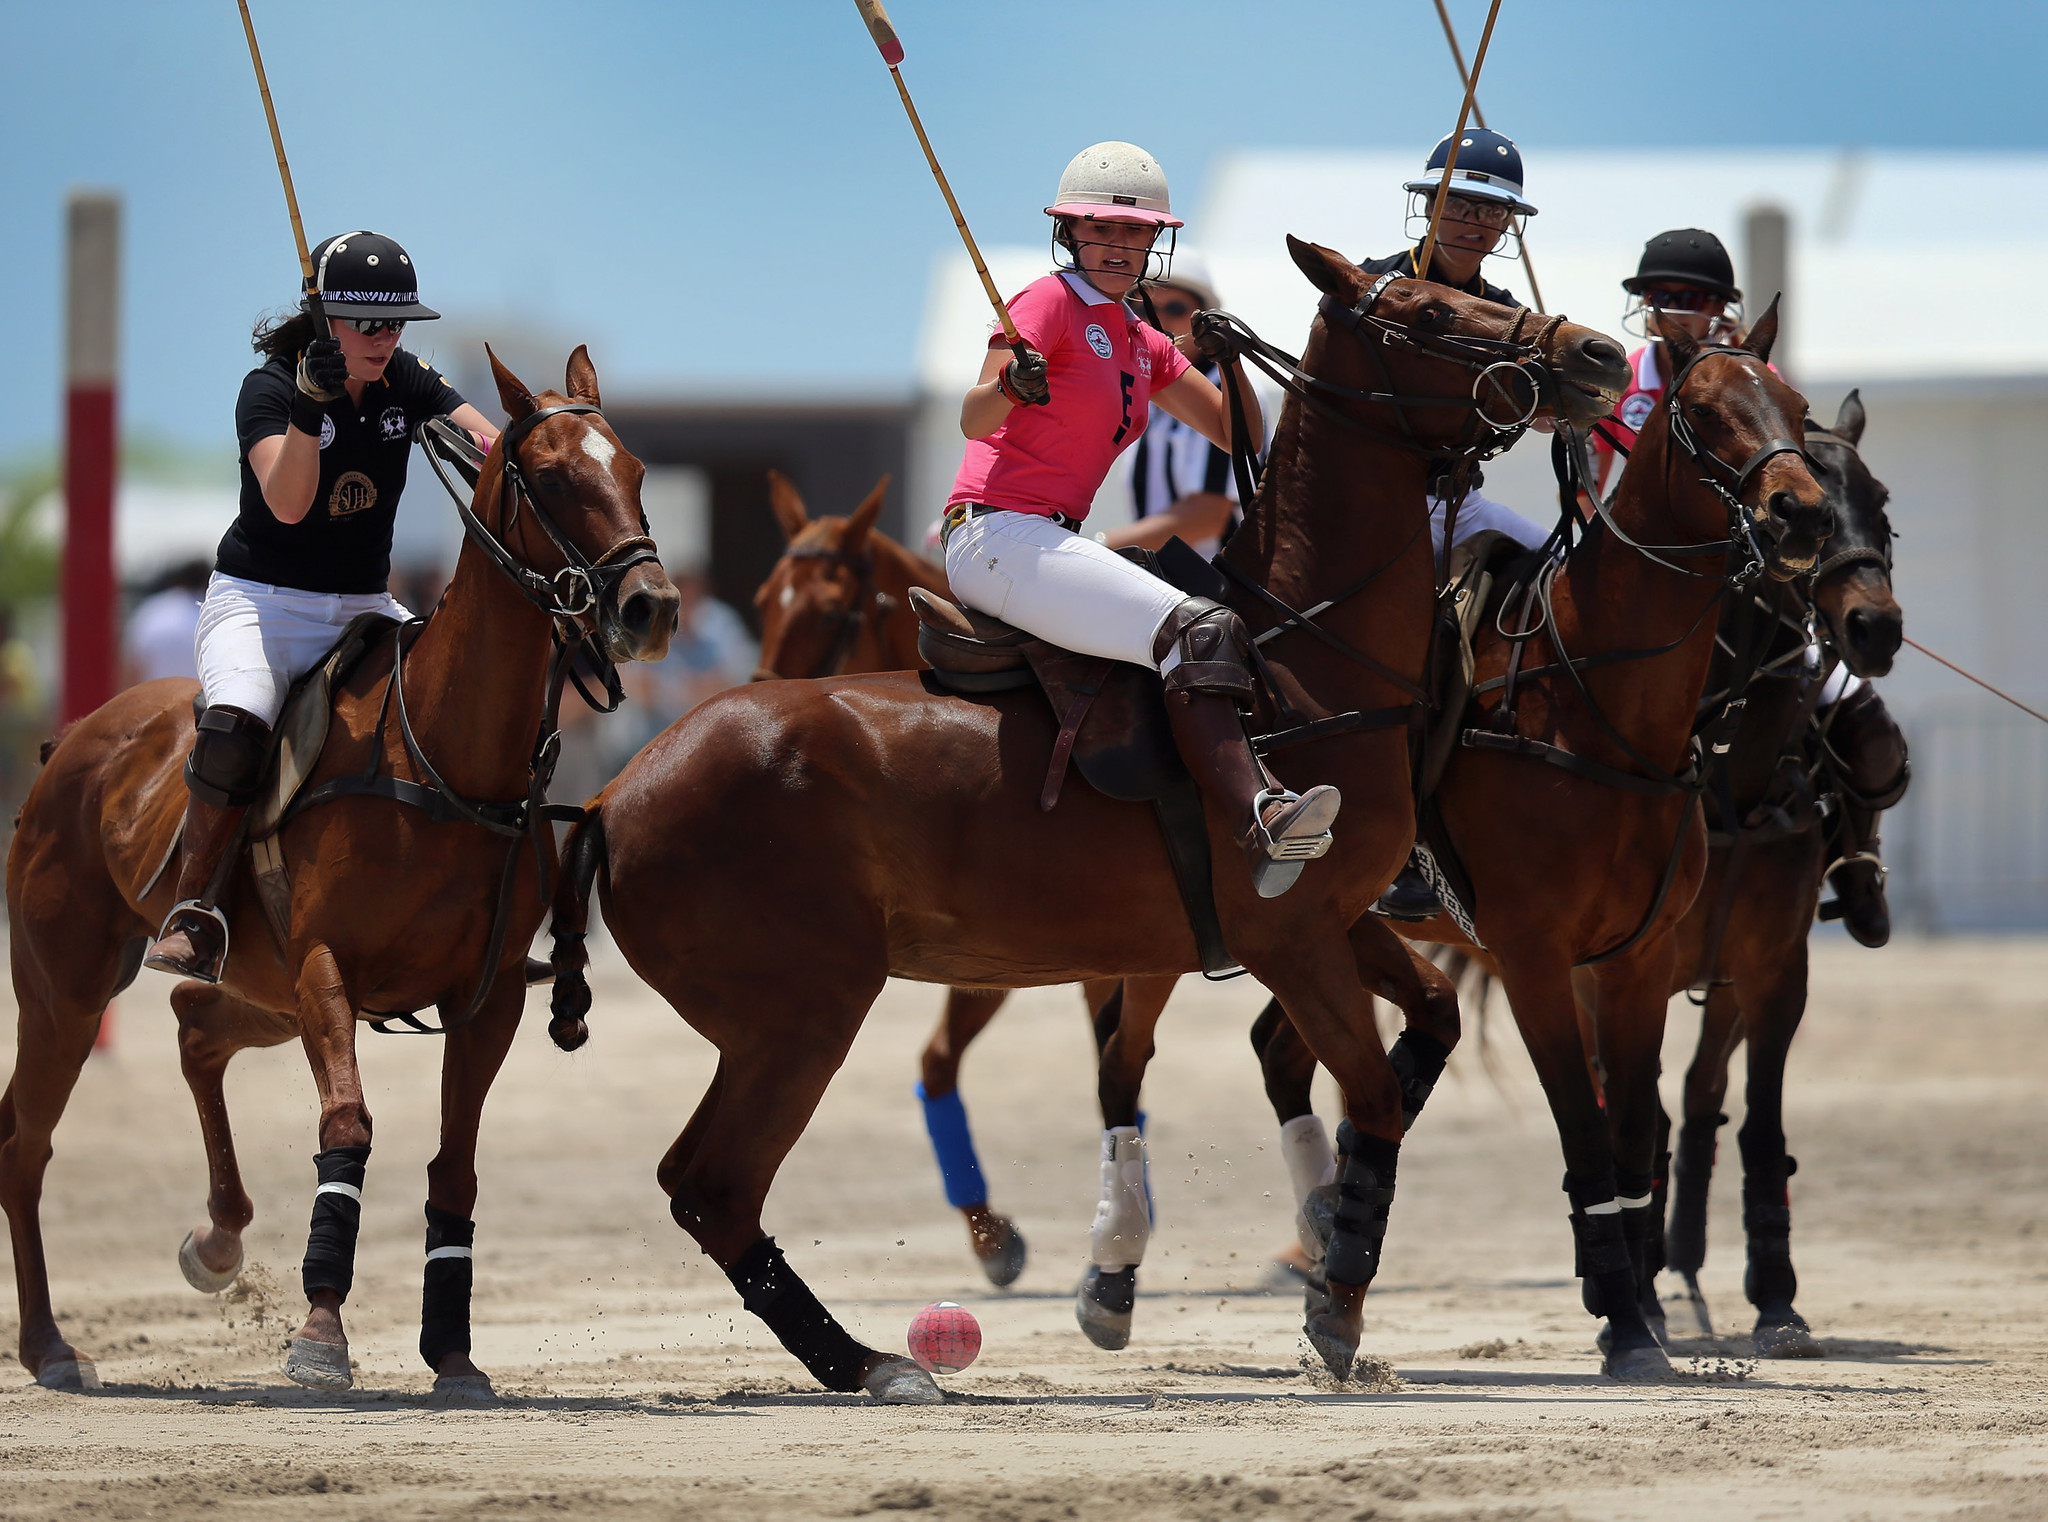 Miami Beach Polo - Women